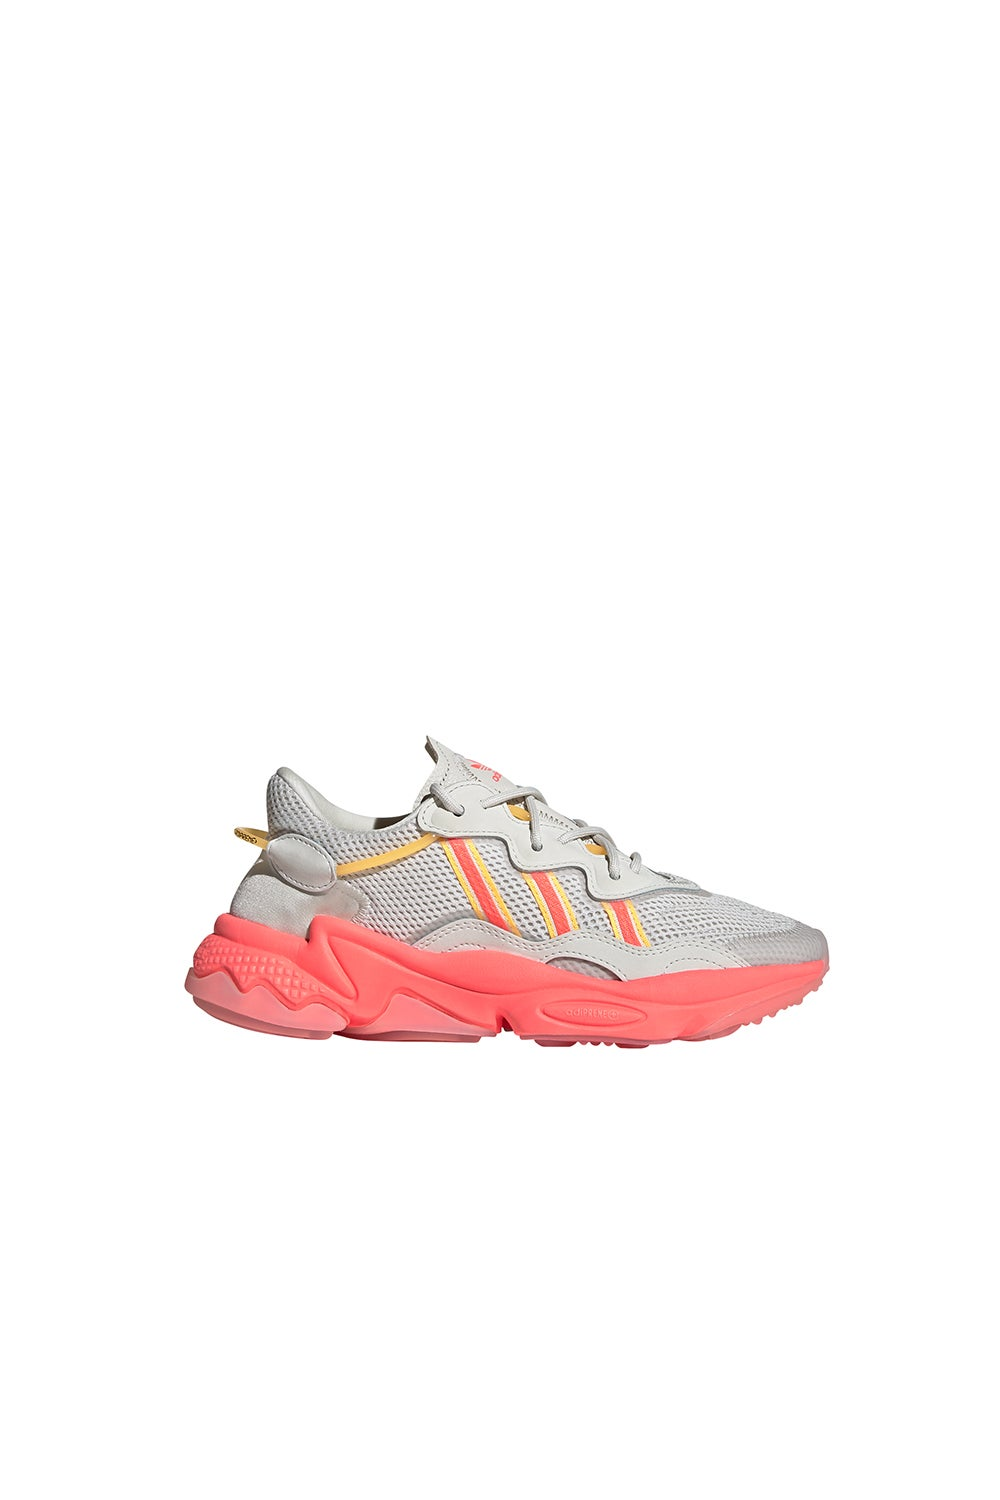 adidas Ozweego Shoes W Talc